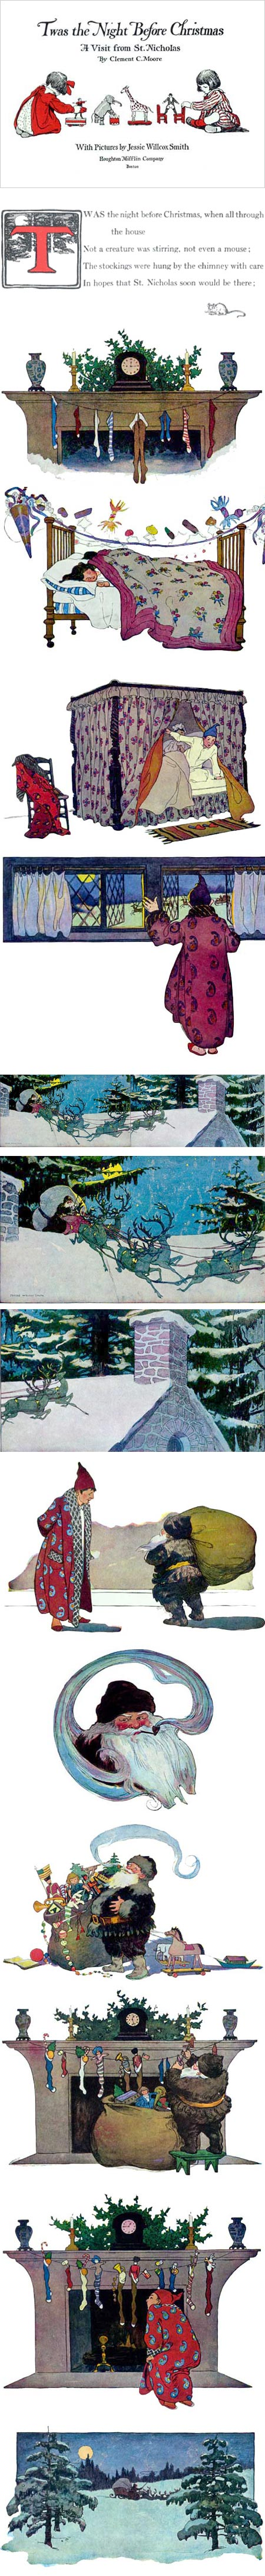 Twas the Night Before Christmas: A Visit from St. Nicholas illustrations by Jessie Willcox Smith